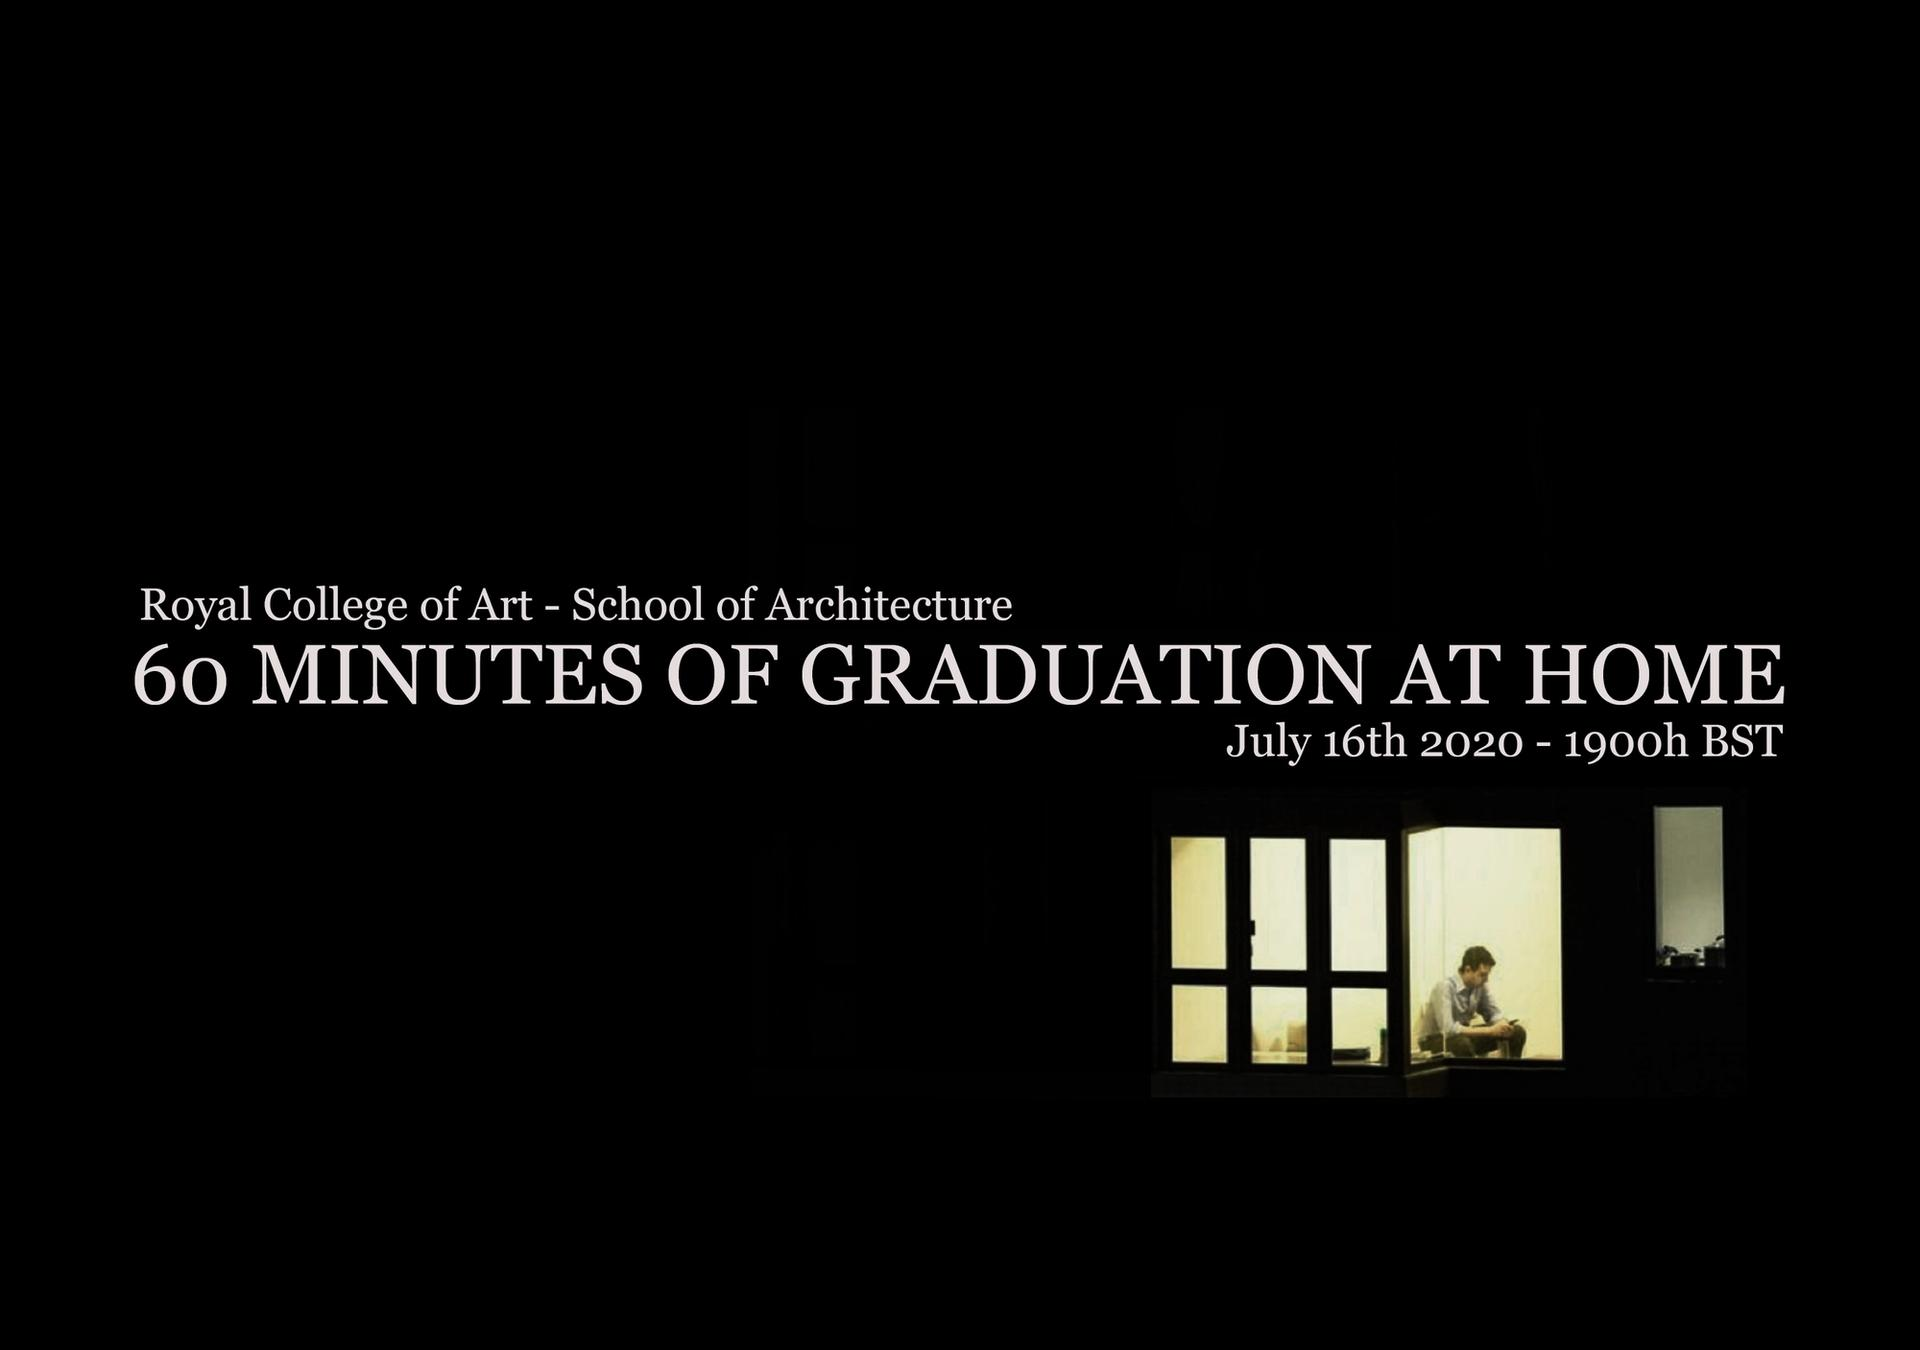 60 Minutes of Graduation at Home from the School of Architecture